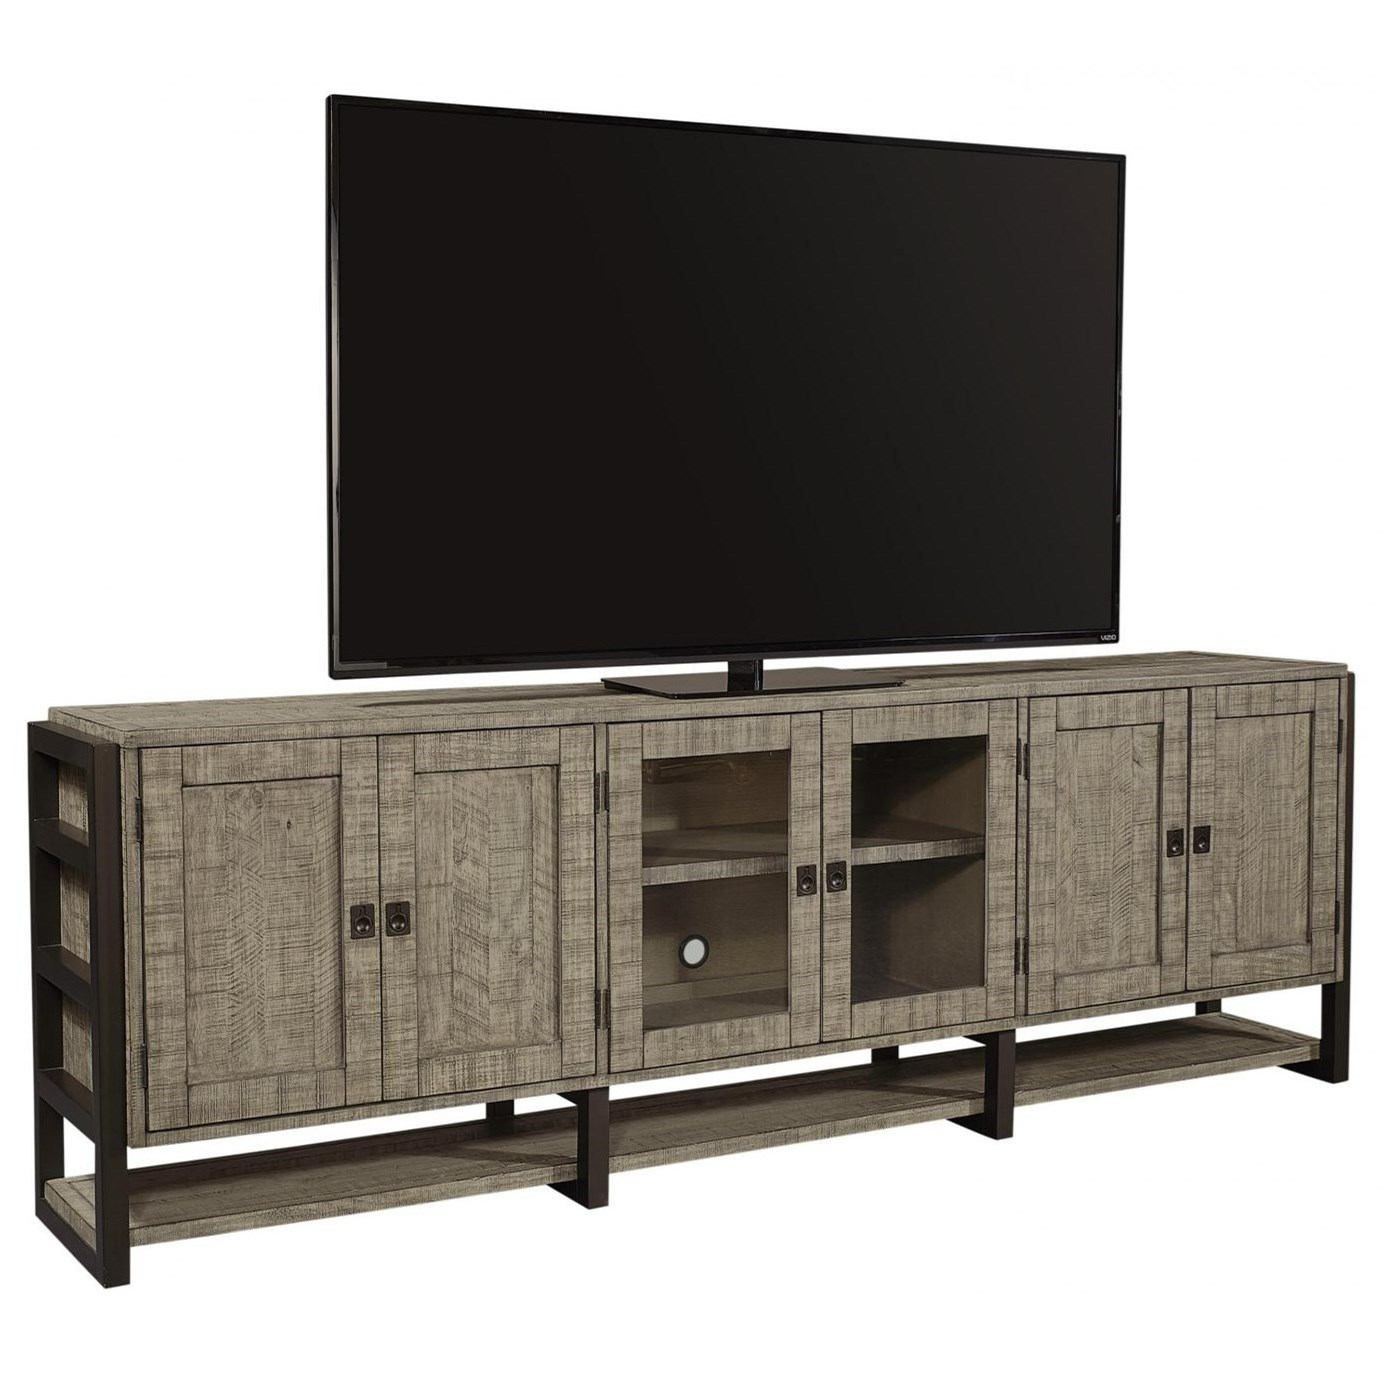 "Grayson 96"" Console by Aspenhome at Stoney Creek Furniture"